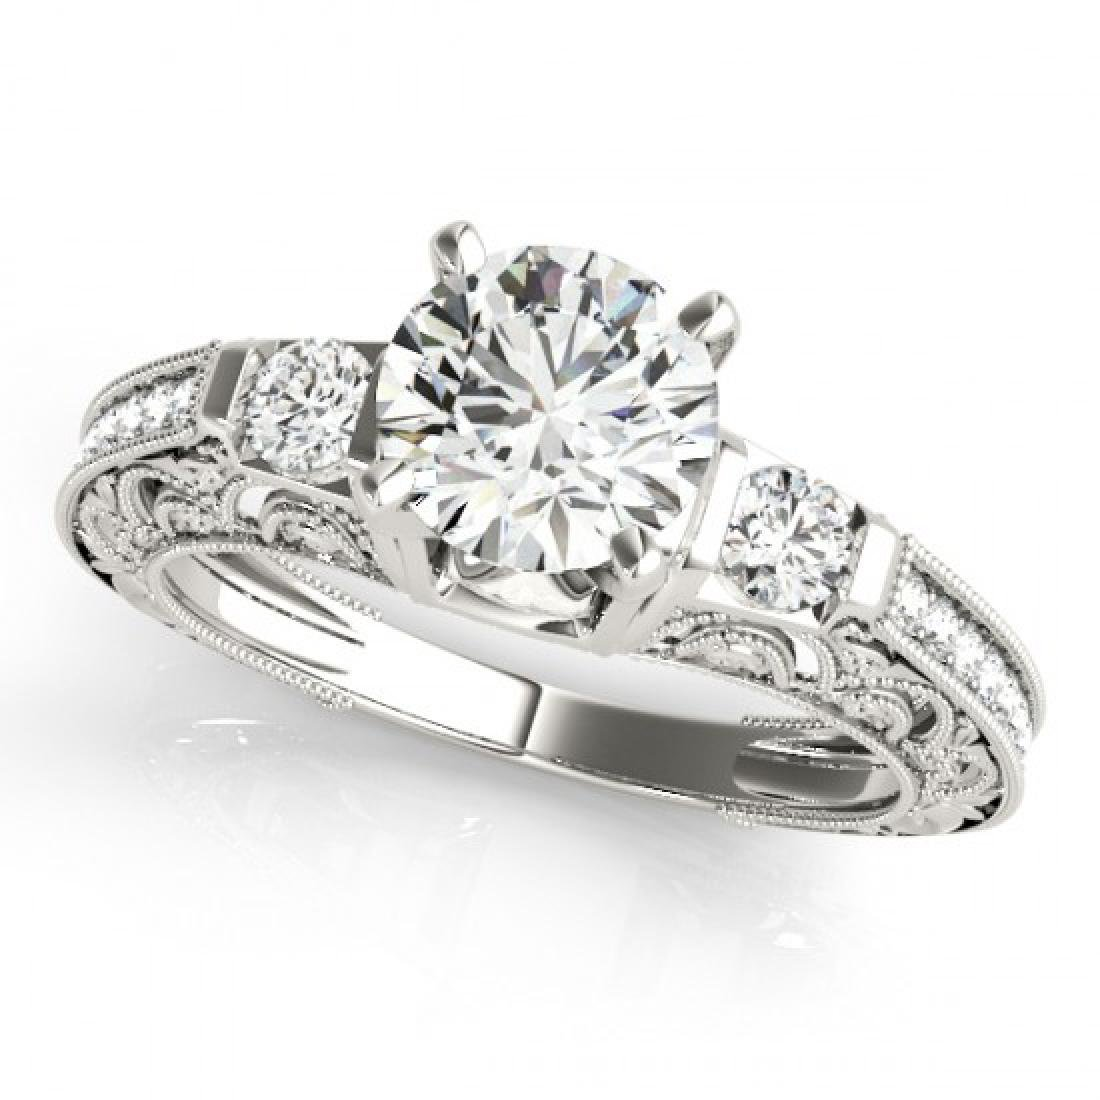 1.38 CTW Certified VS/SI Diamond Solitaire Antique Ring - 2